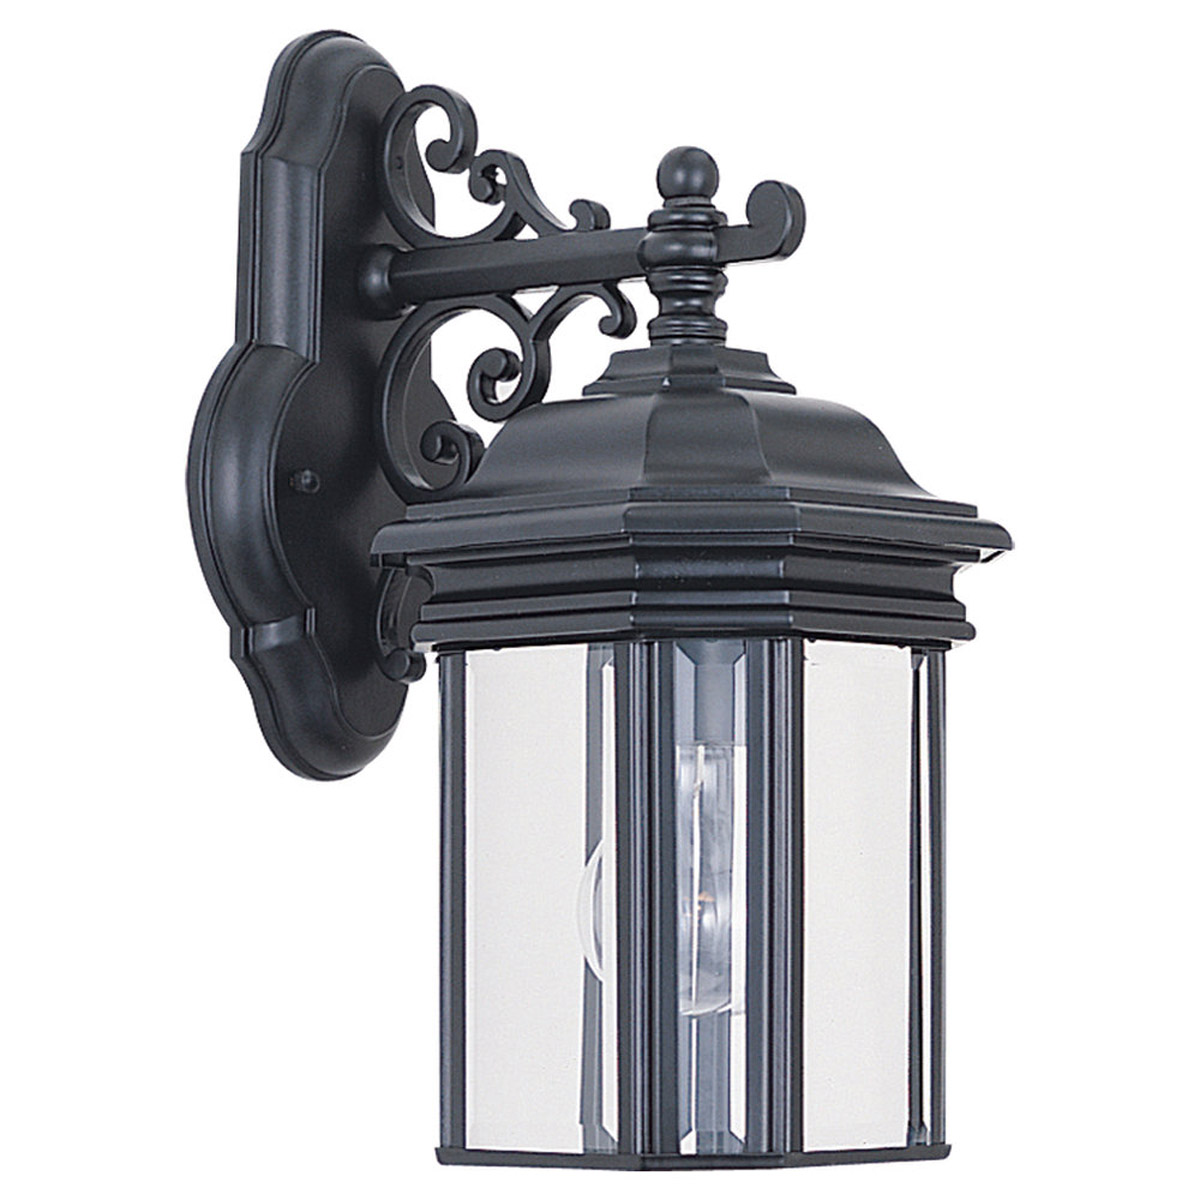 Sea Gull Lighting Hill Gate 1 Light Outdoor Wall Lantern in Black 8835-12 photo